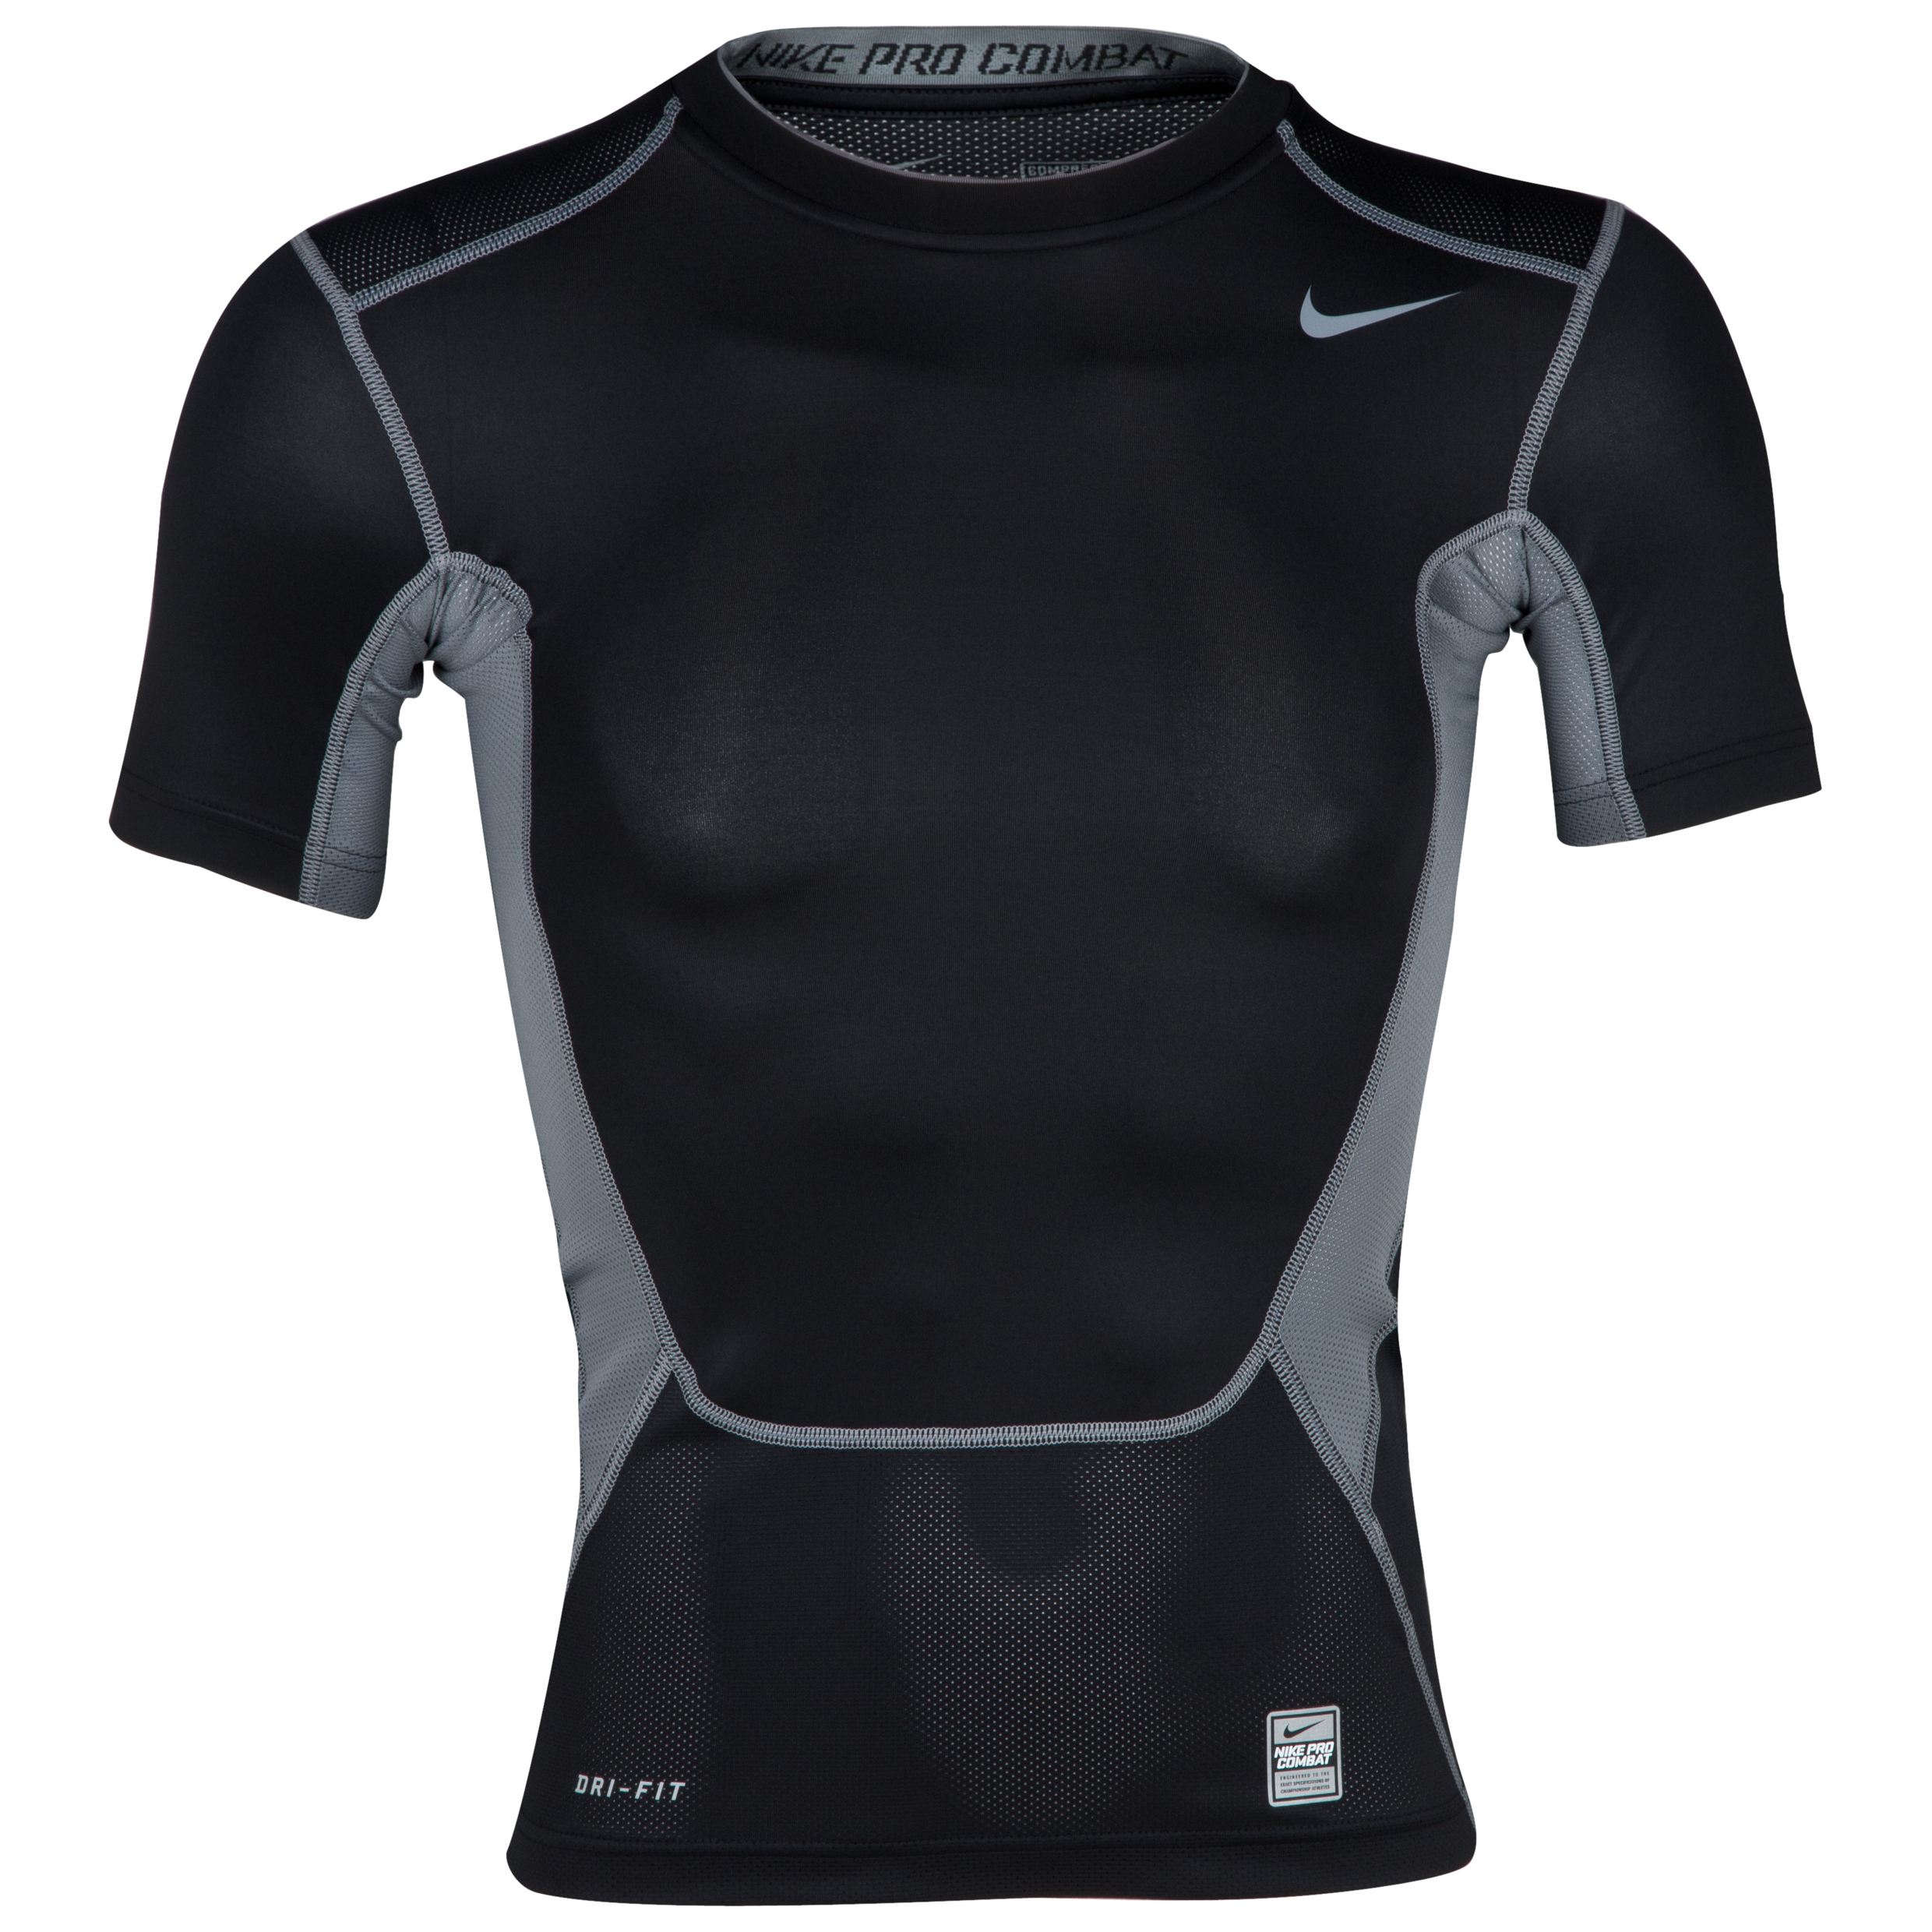 Nike Pro Combat Hypercool 1.2 Base Layer Top - Black/Cool Grey/Cool Grey Black